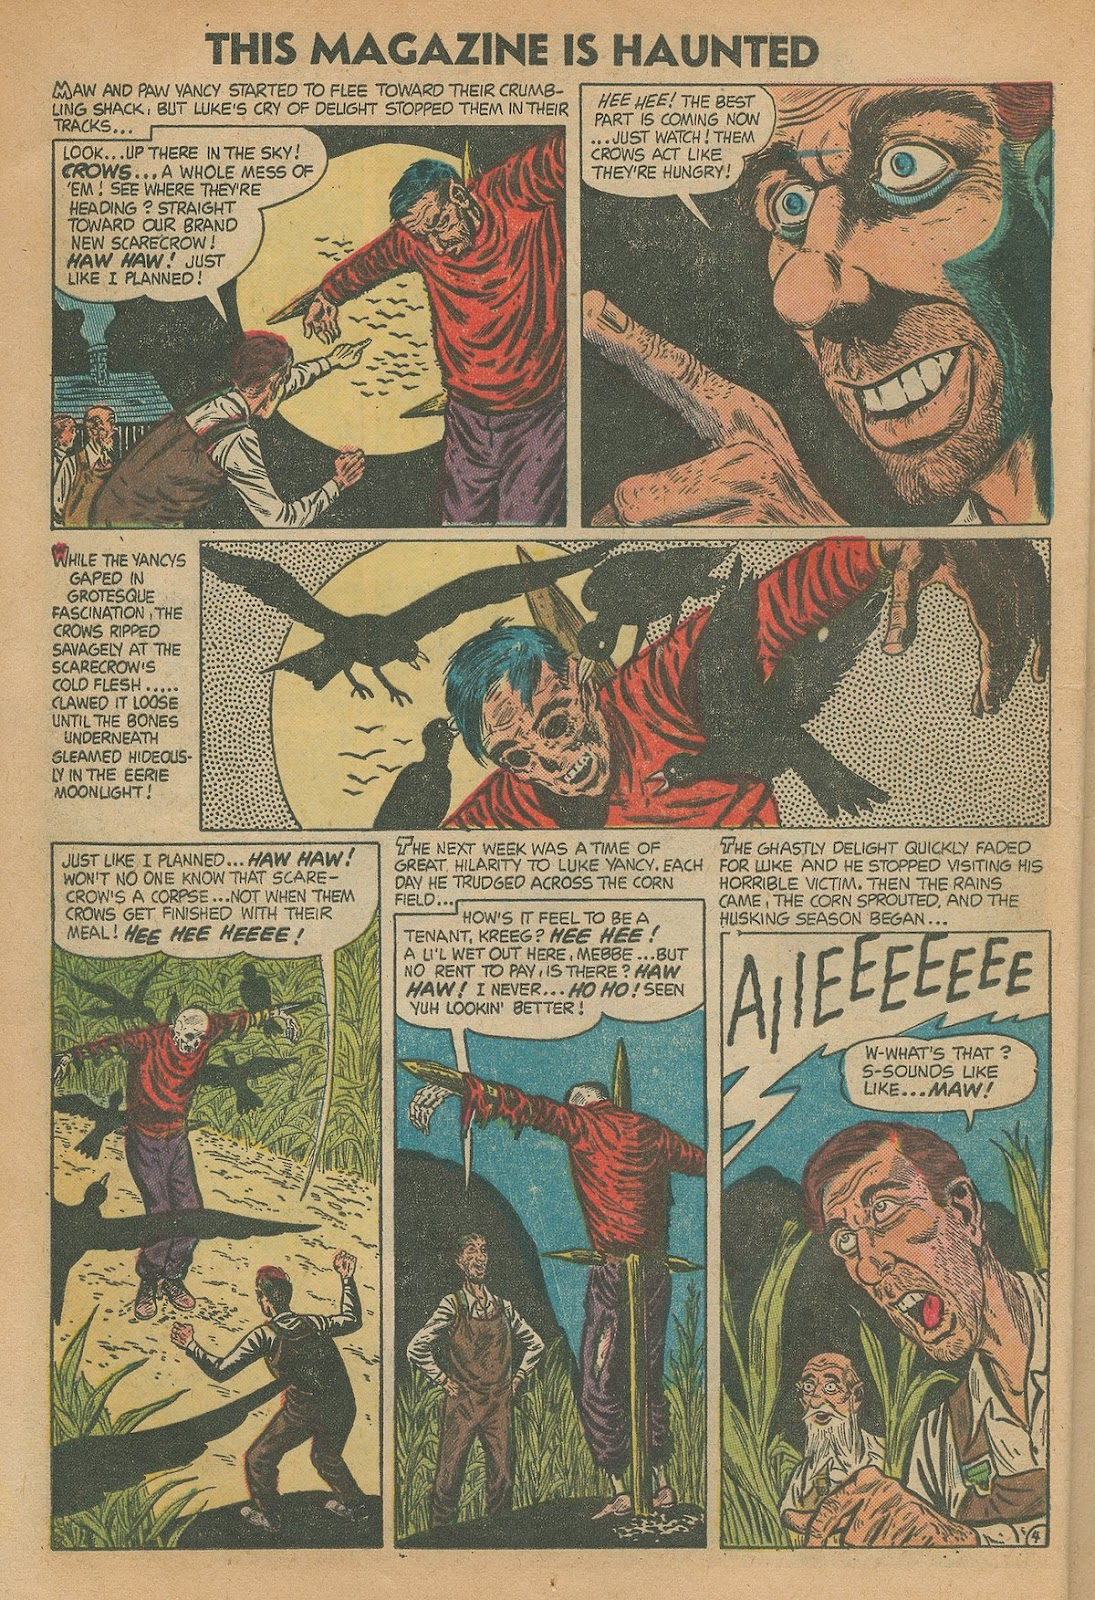 Read online This Magazine Is Haunted comic -  Issue #19 - 12